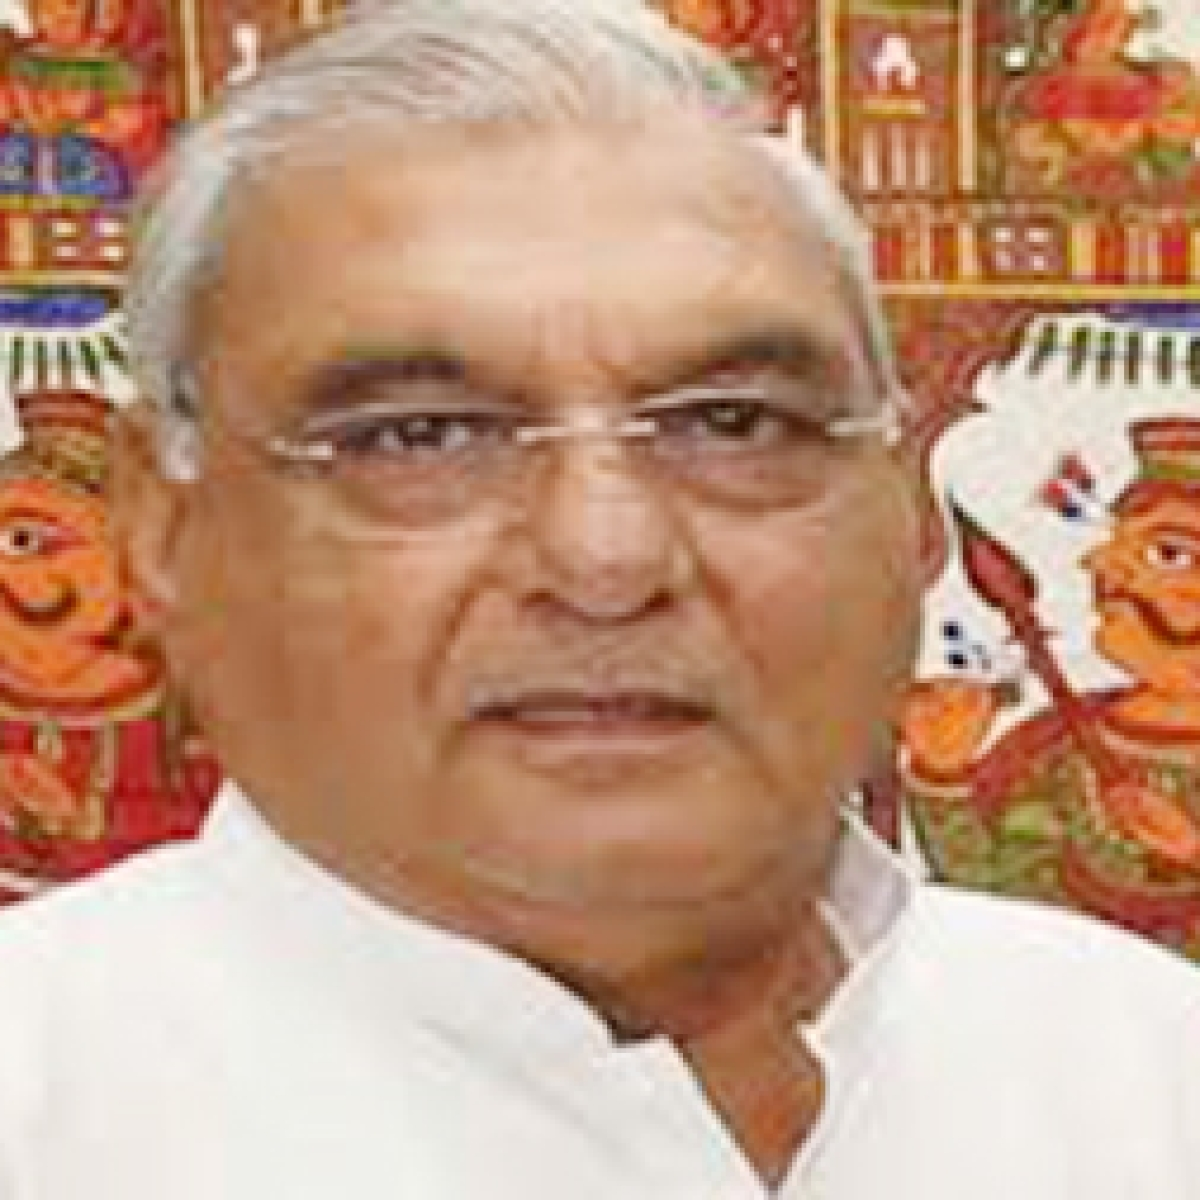 Congress to act tough on Bhupinder Singh Hooda